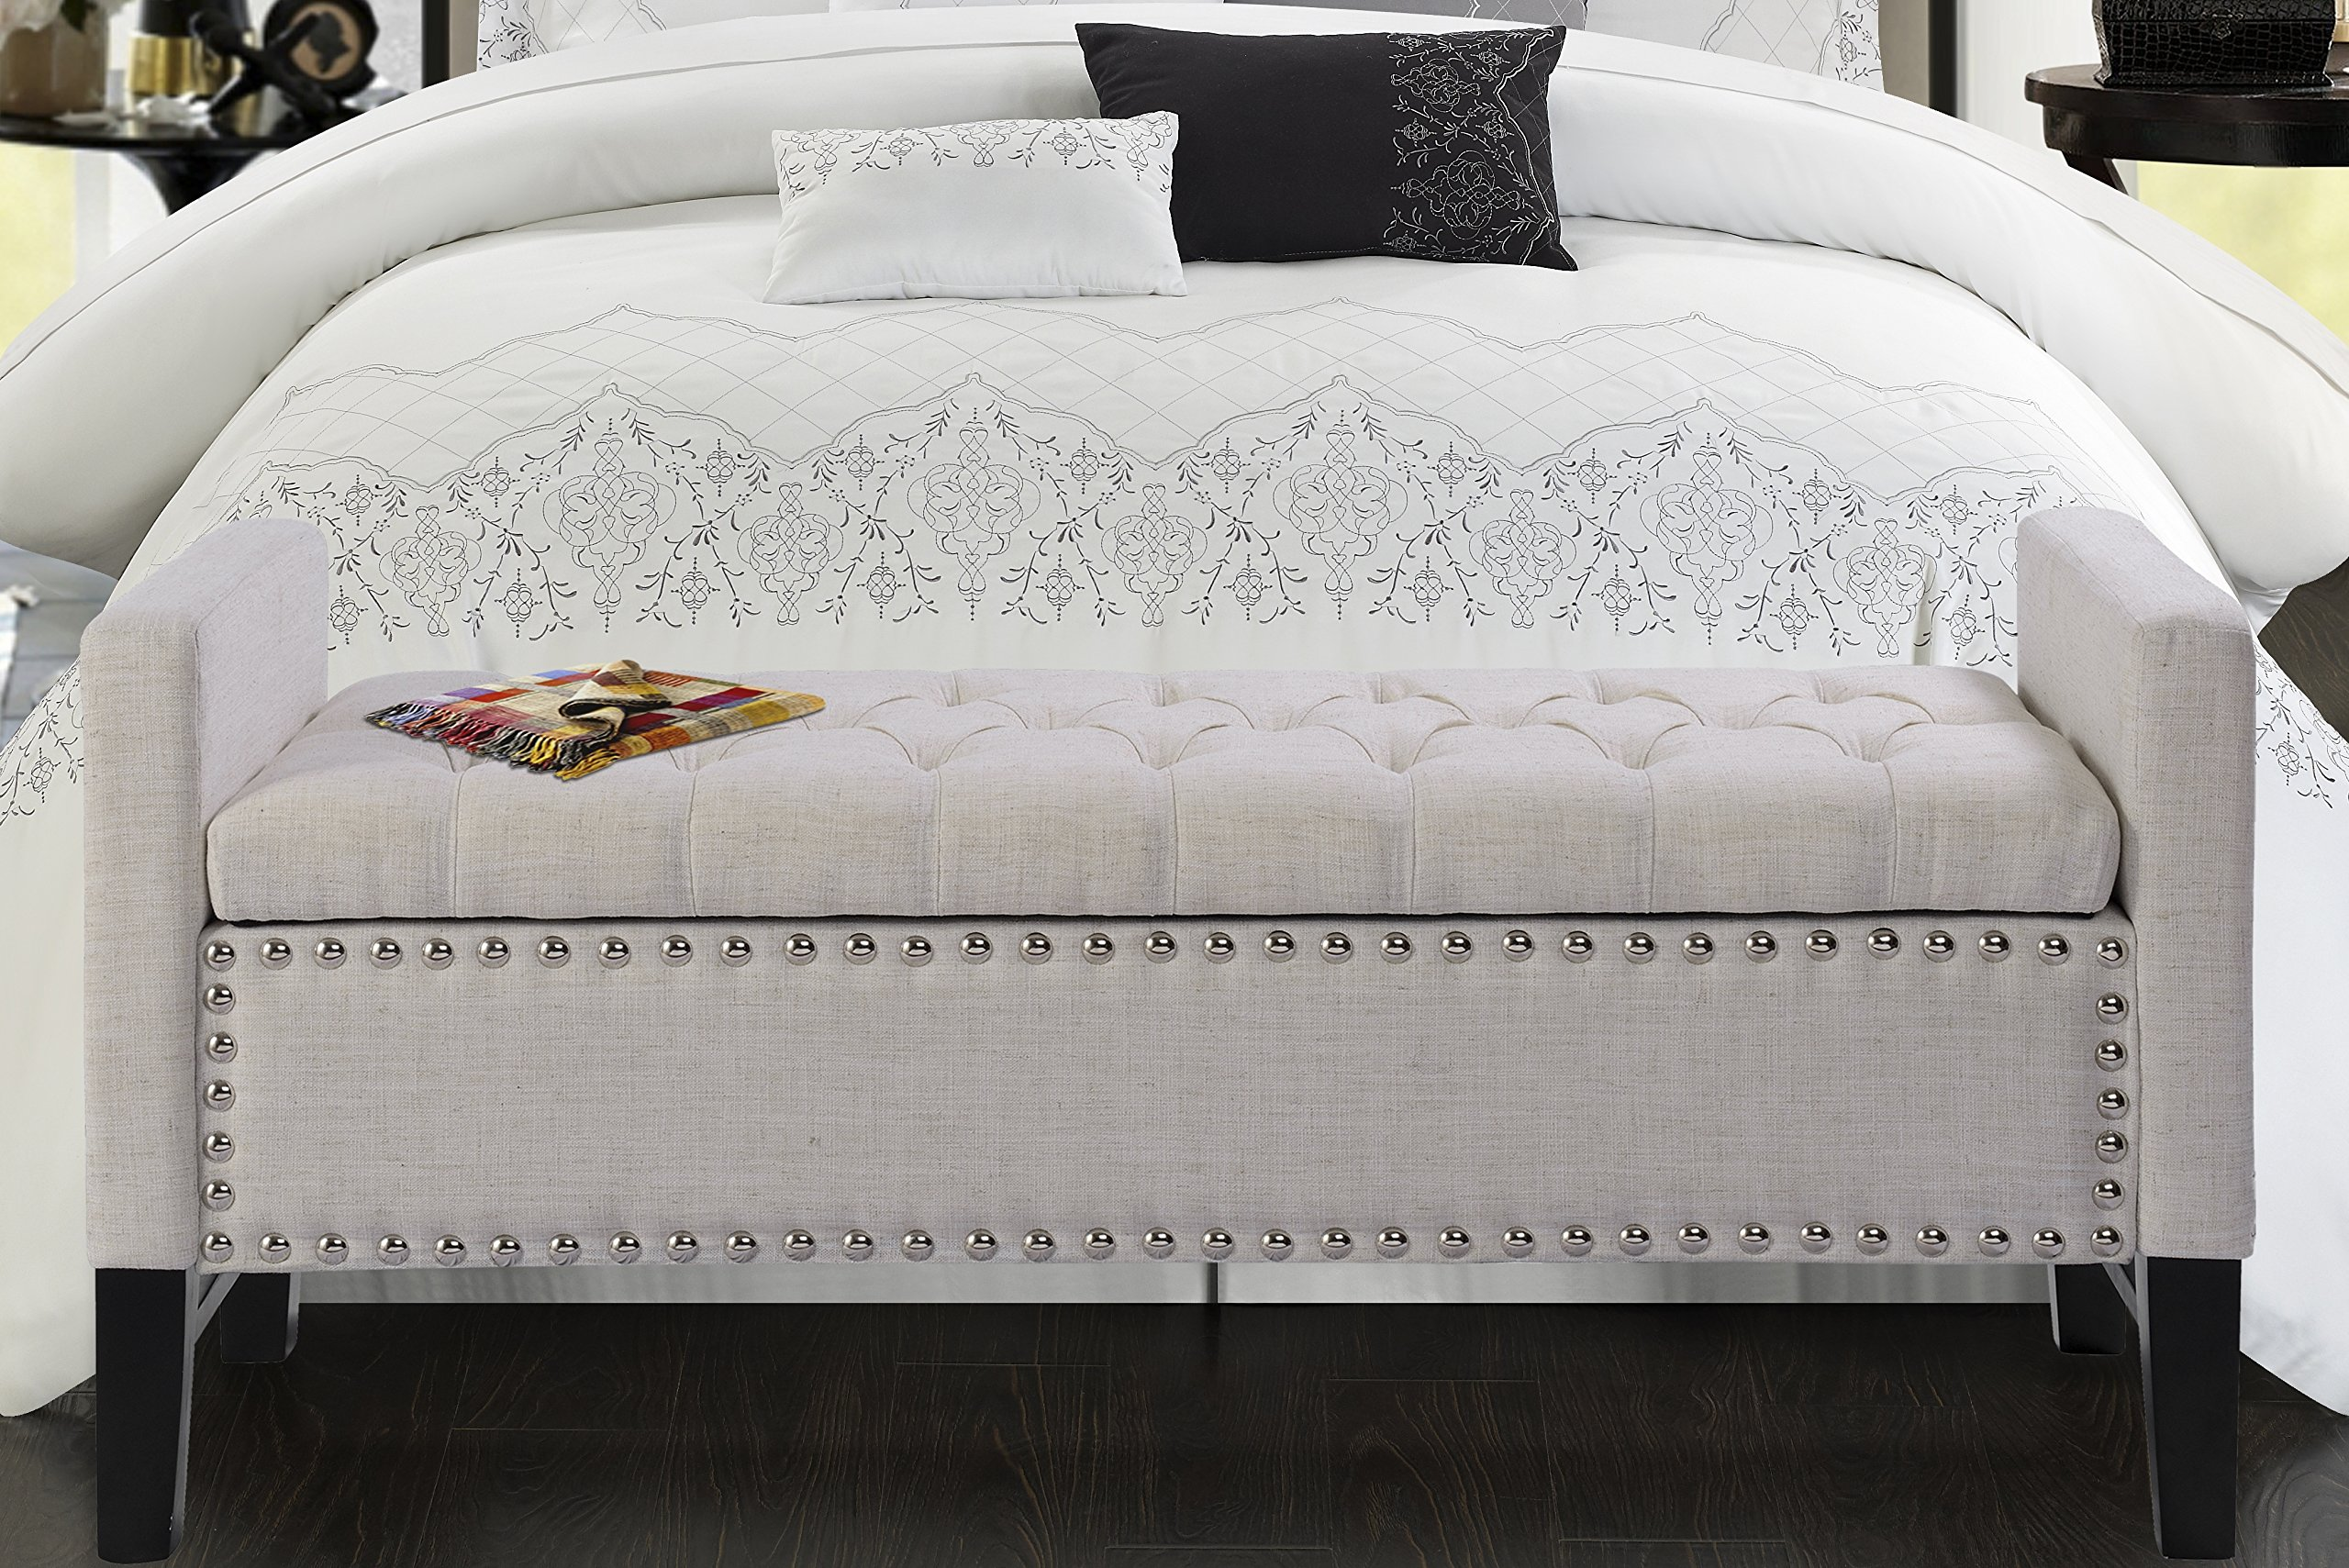 Iconic Home Lance Linen Modern Contemporary Button Tufted with Silver Nailheads Deco on Frame Storage Lid Can Stop At Any Position Bench, Cream White